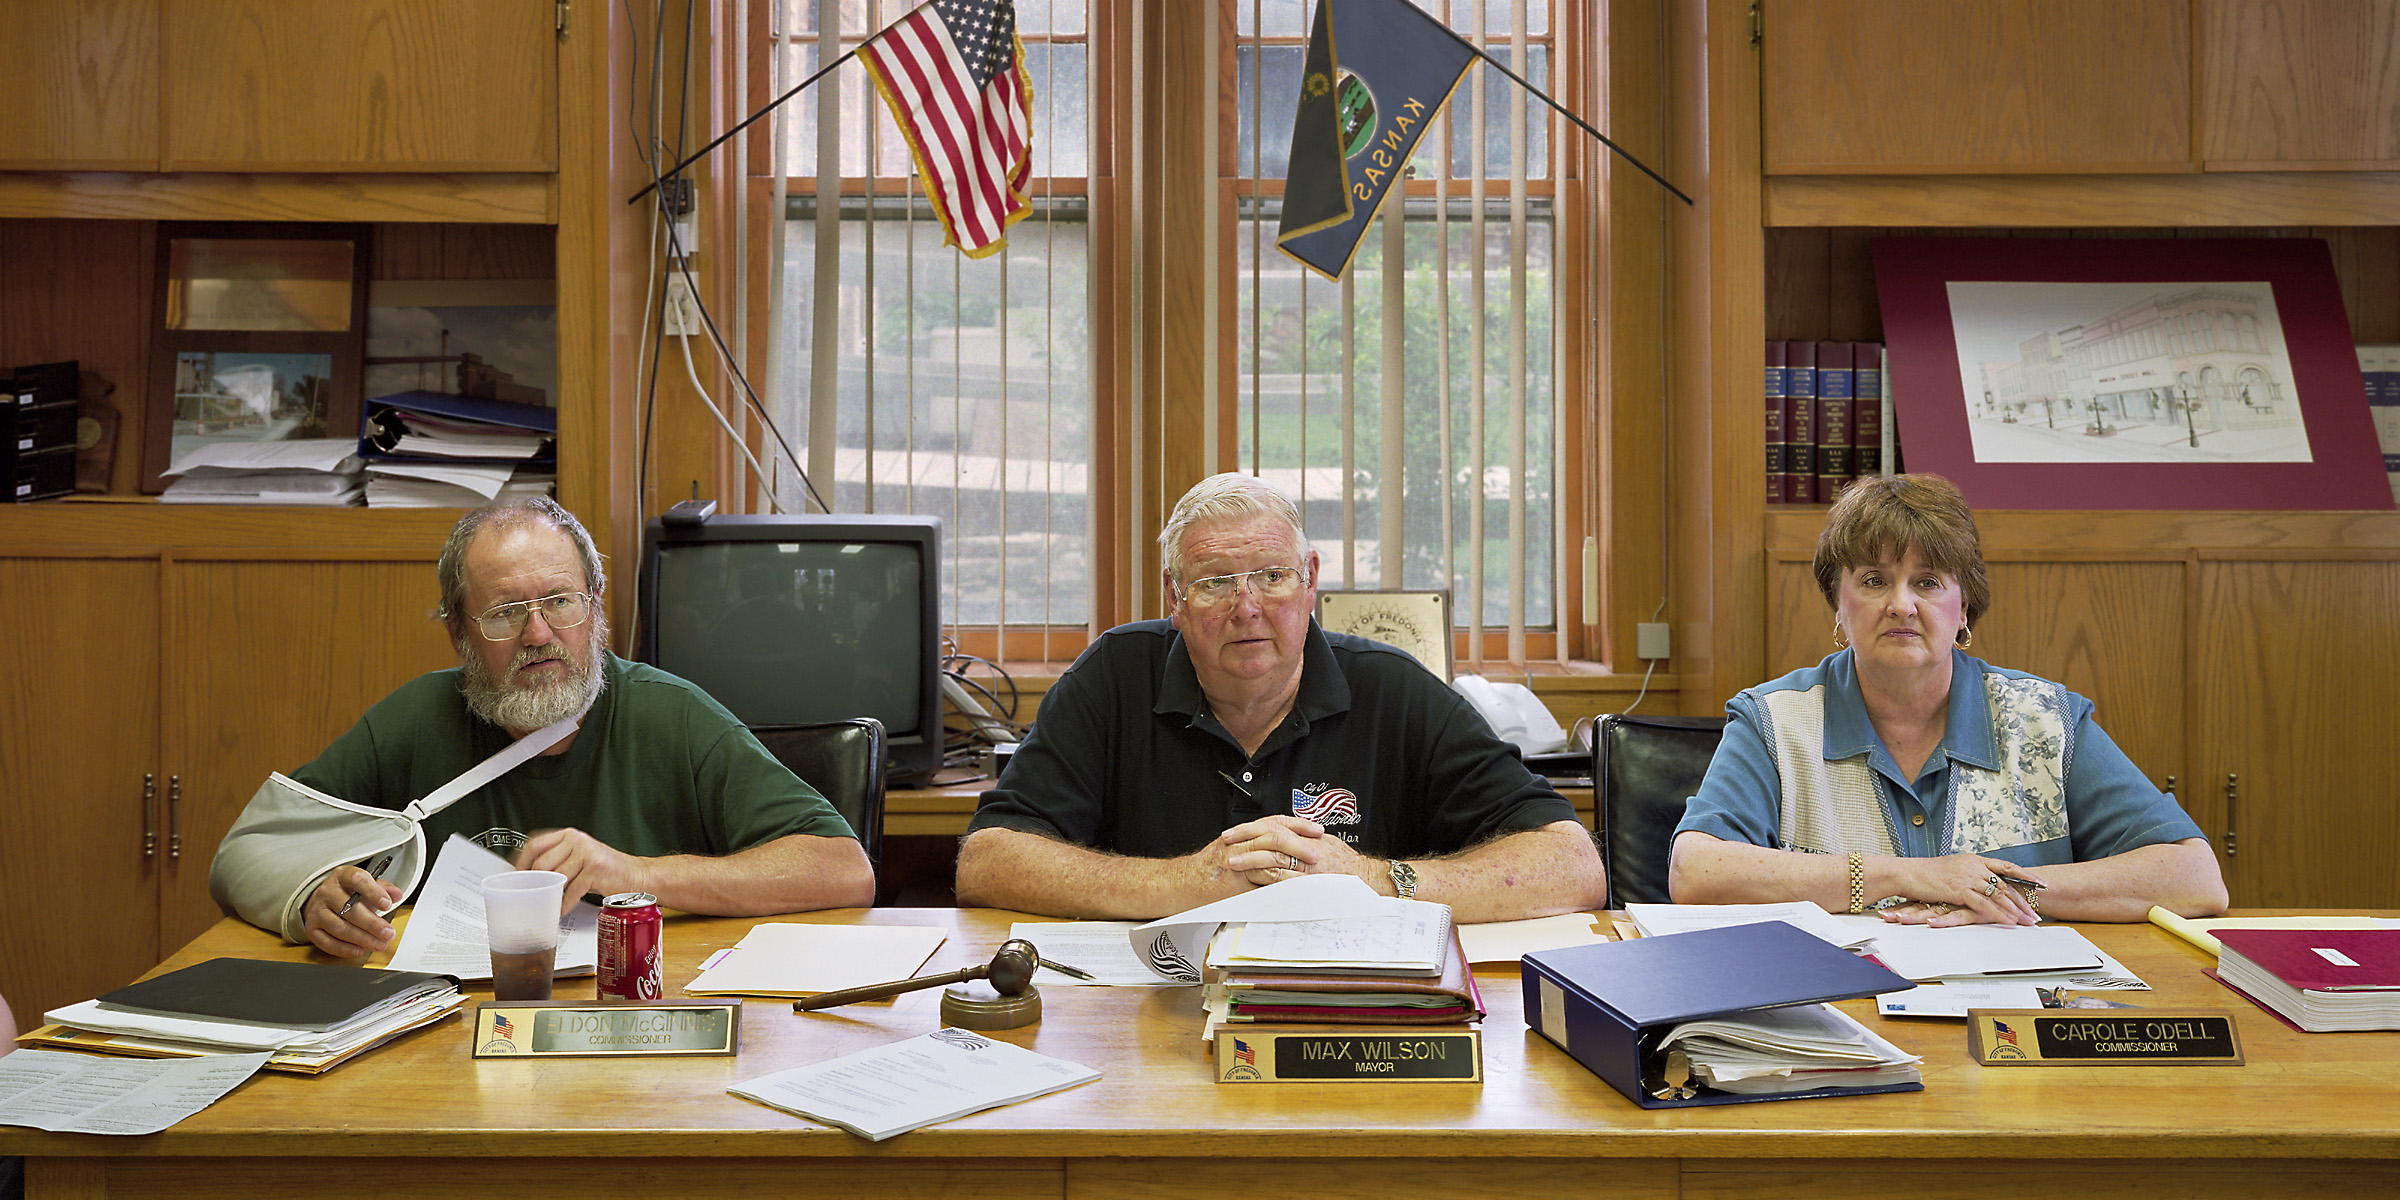 Fredonia, Kansas (population 2,484) Board of Commissioners, May 20, 2002 (L to R): Eldon McGinnis, Max Wilson (Mayor), Carole Odell, 2002.